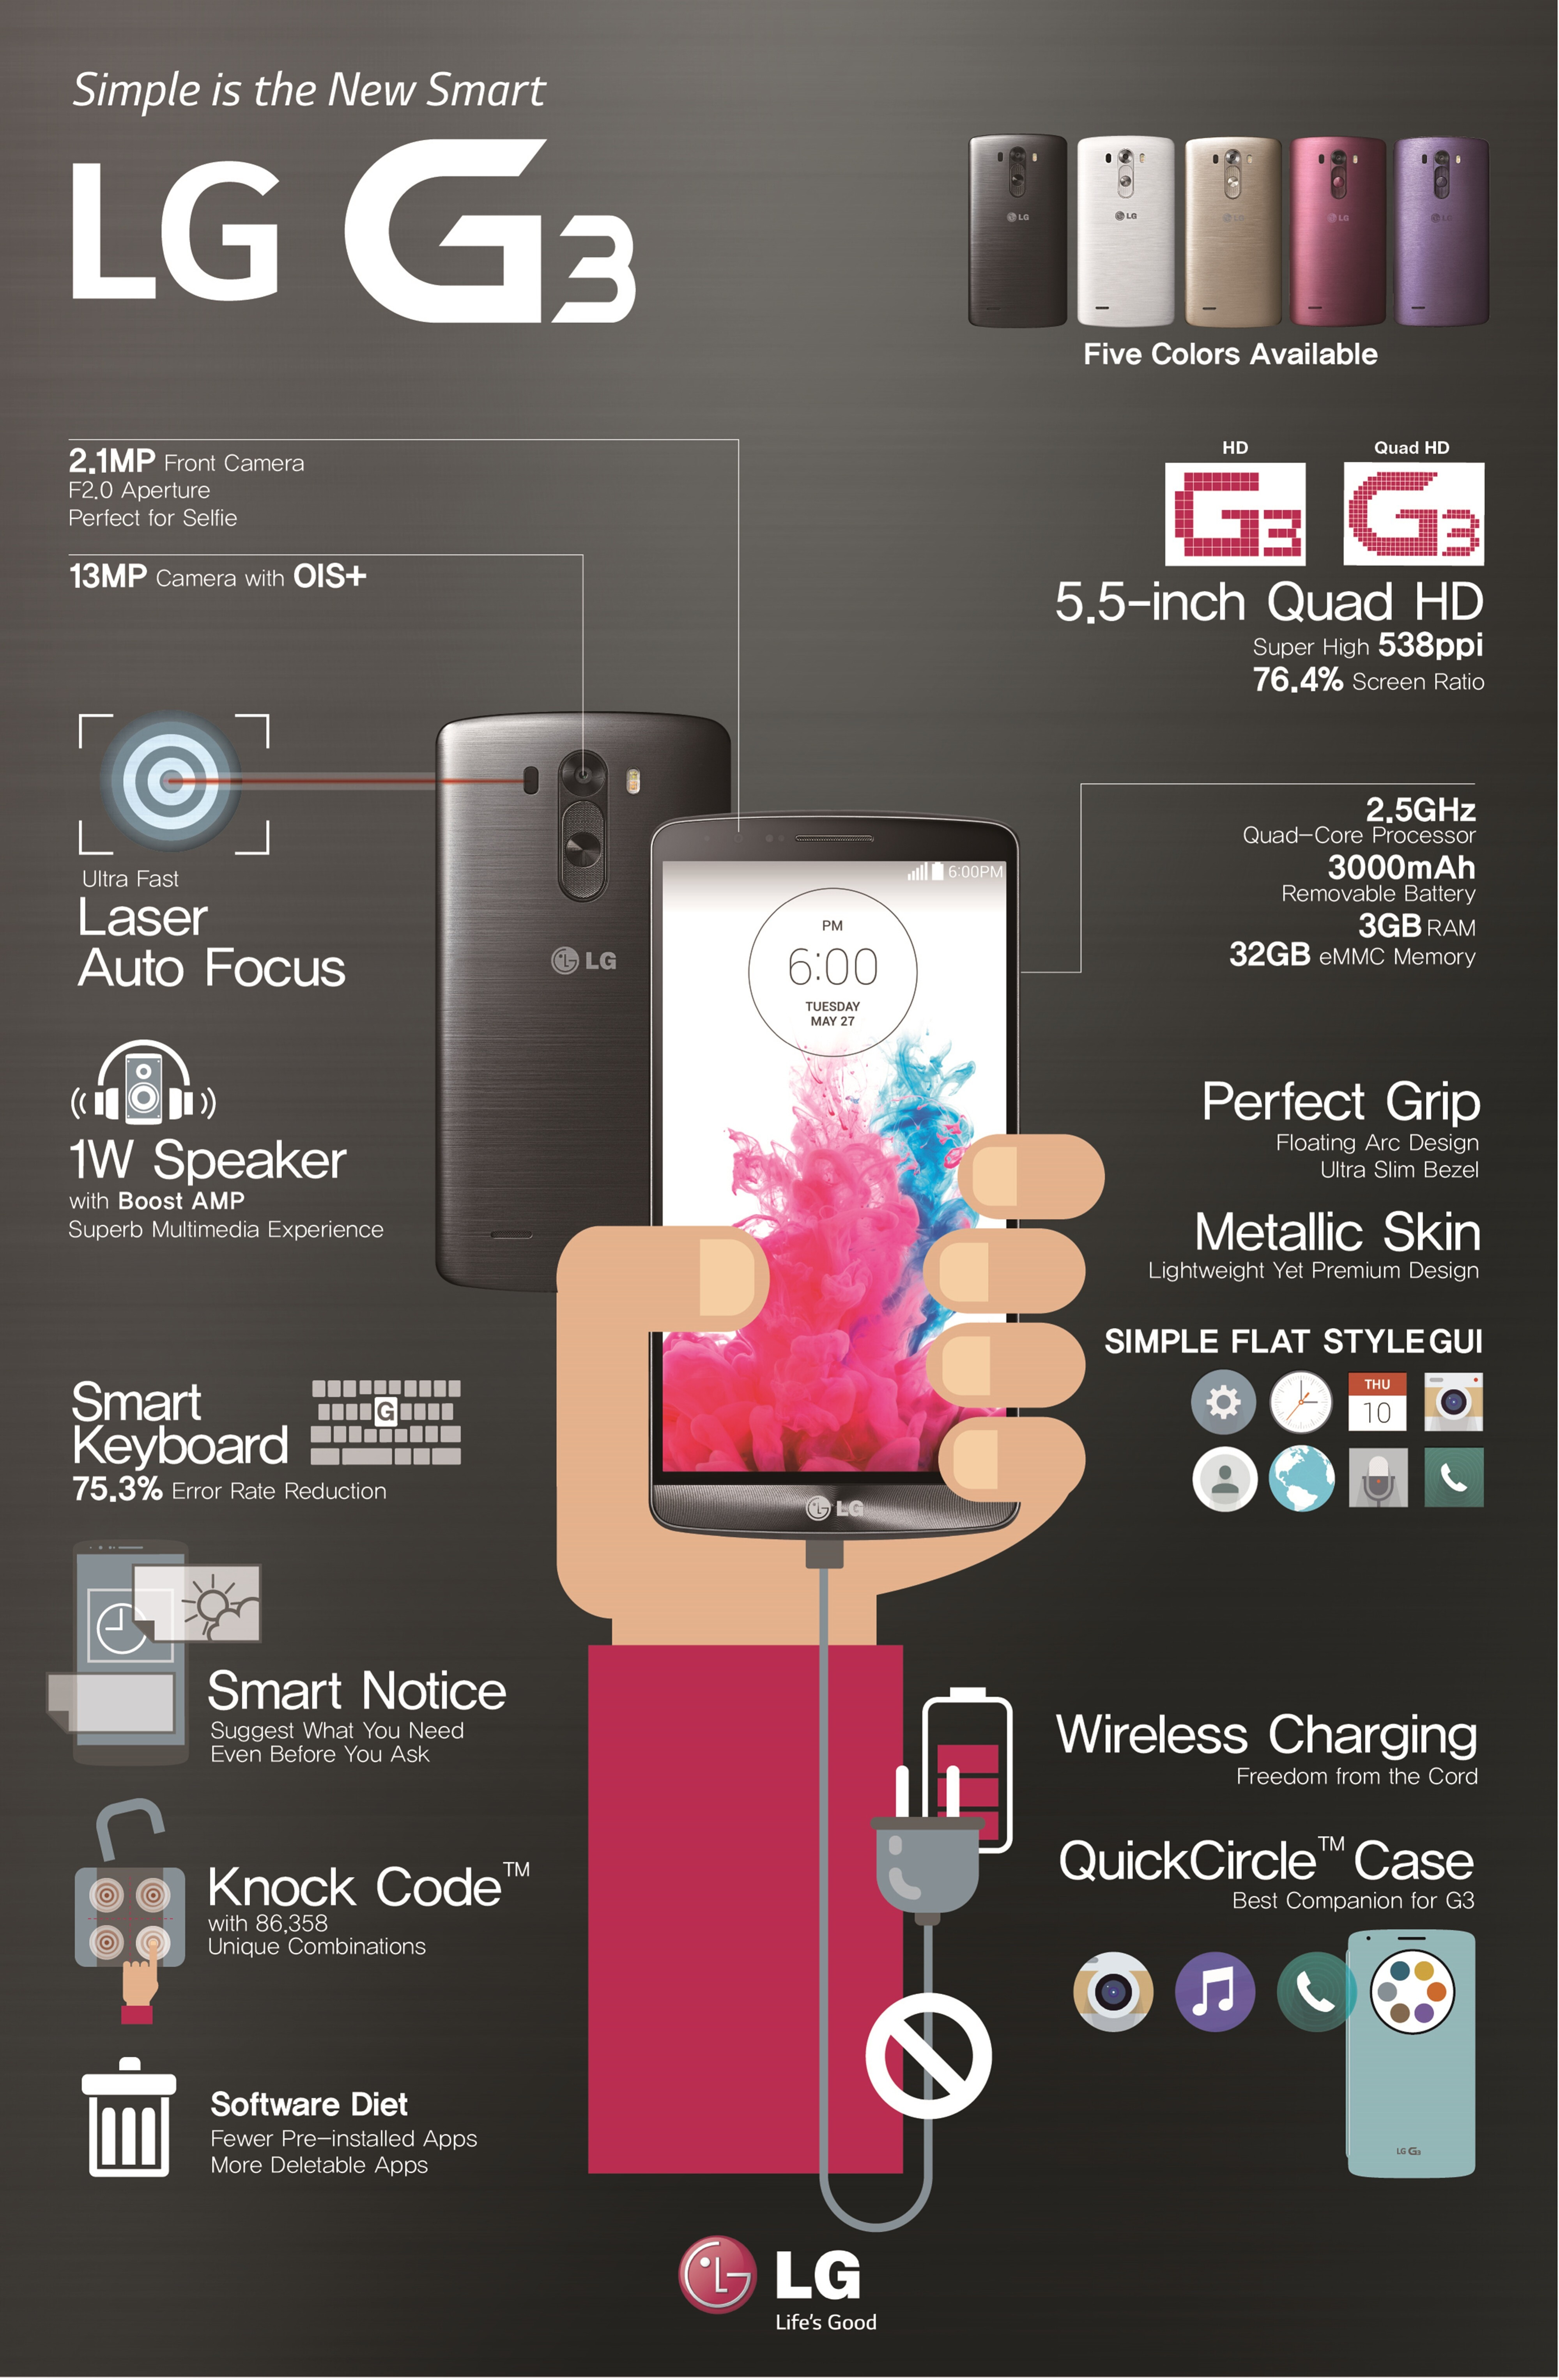 Lg G3 Will Be Launched Around The World Starting June 27